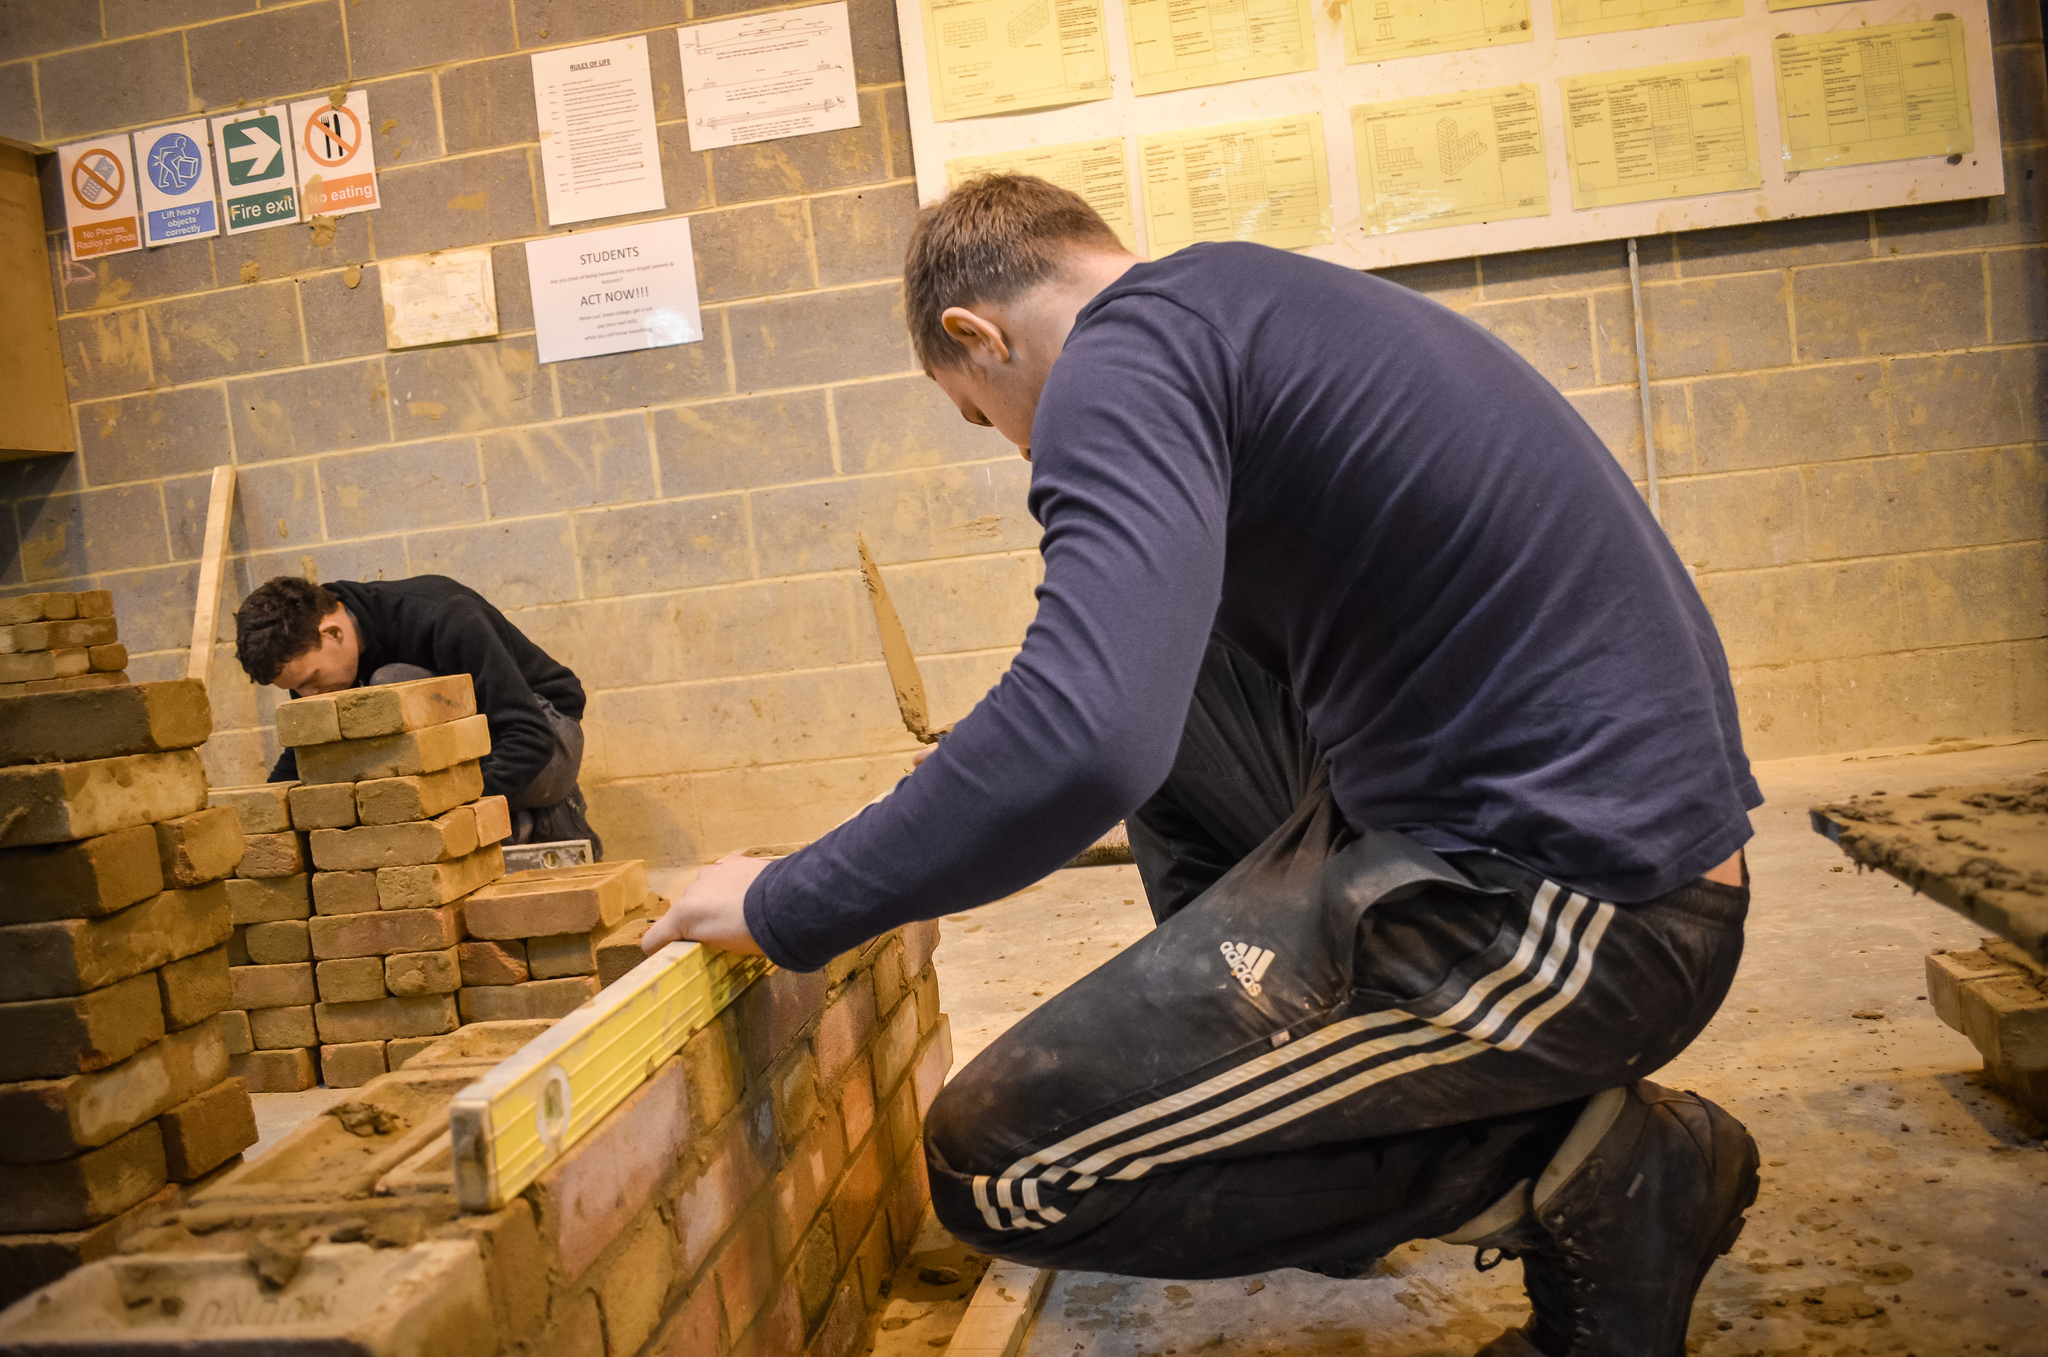 CITB highlights the skills agenda